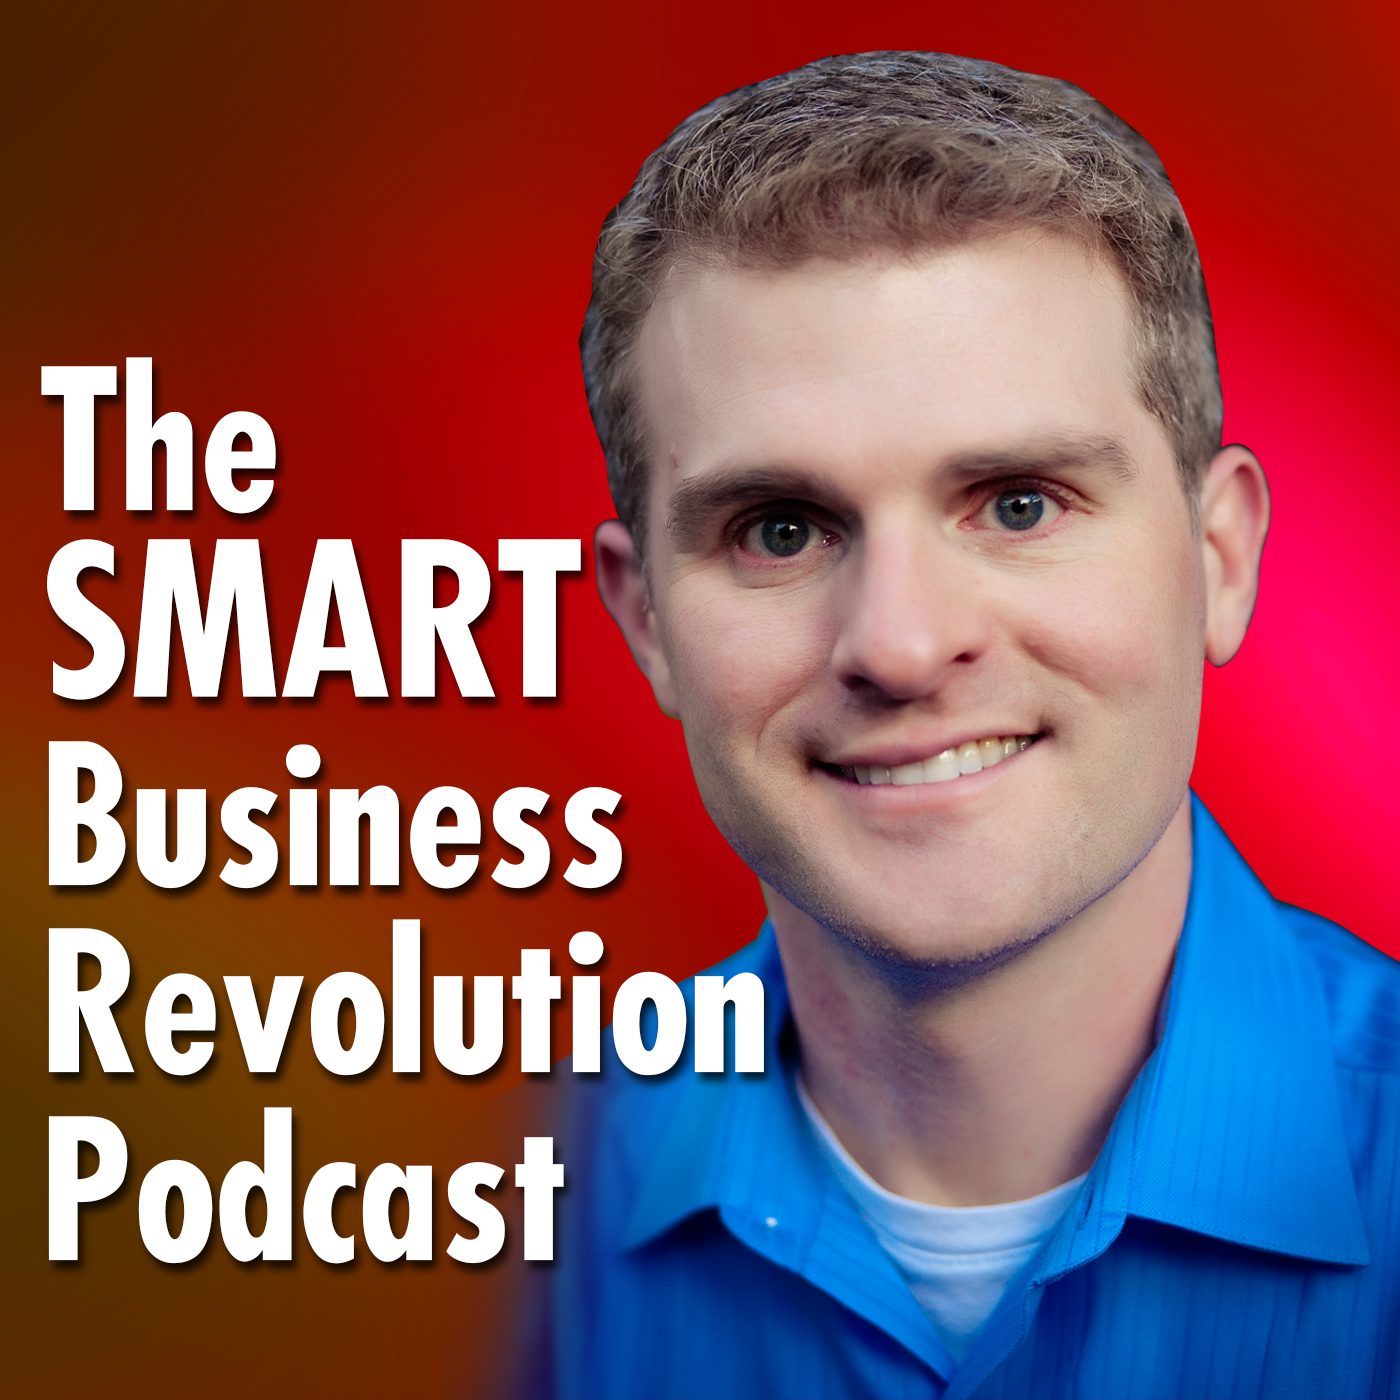 Smart-Business-Revolution-podcast-artwork-red